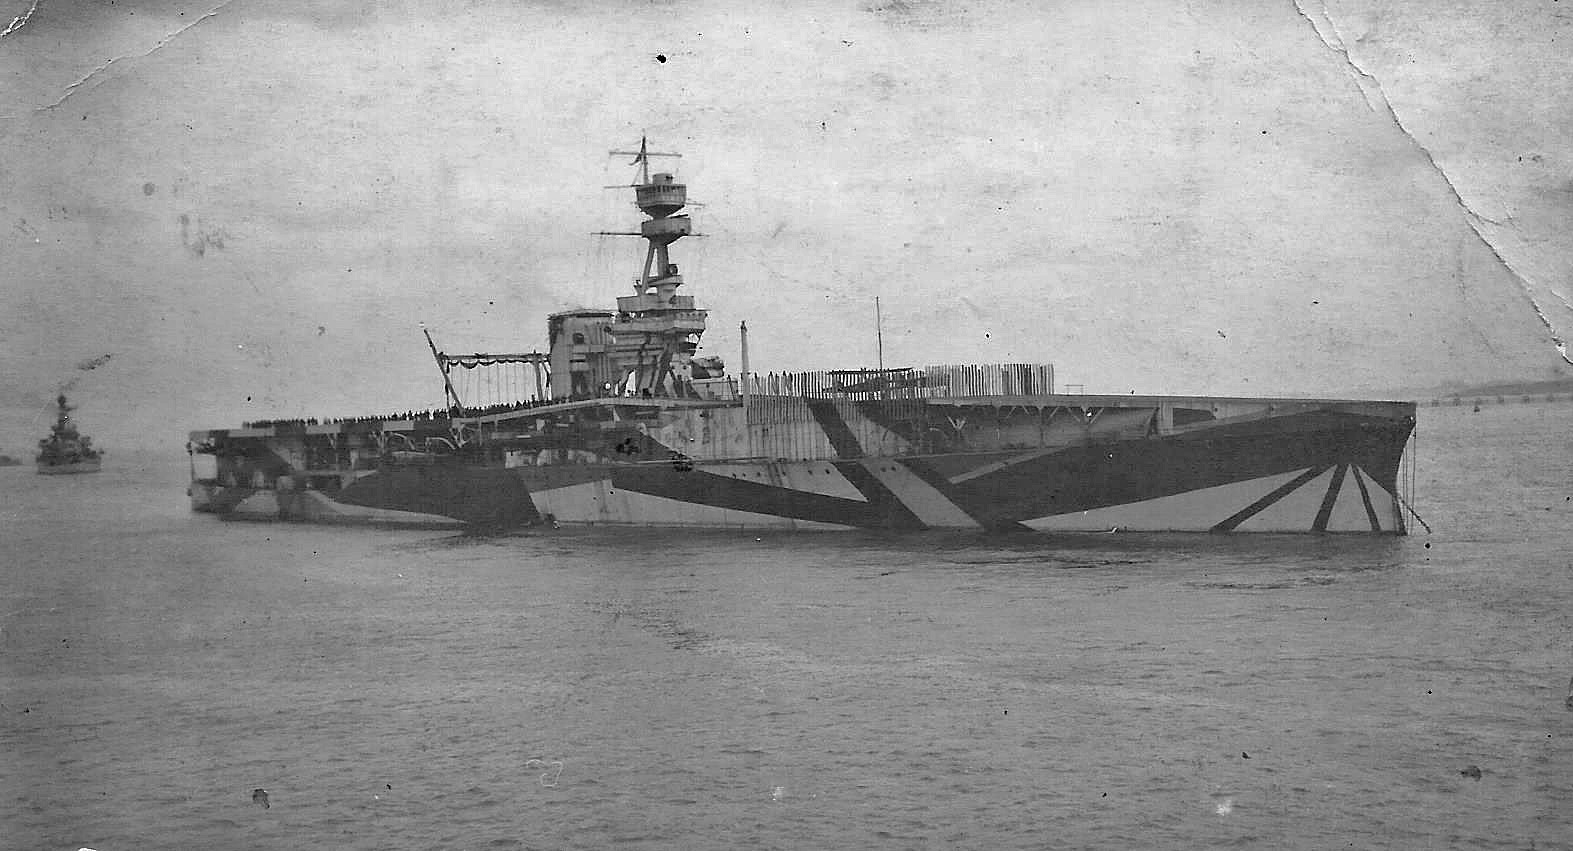 HMS Furious at anchor with aircraft on deck